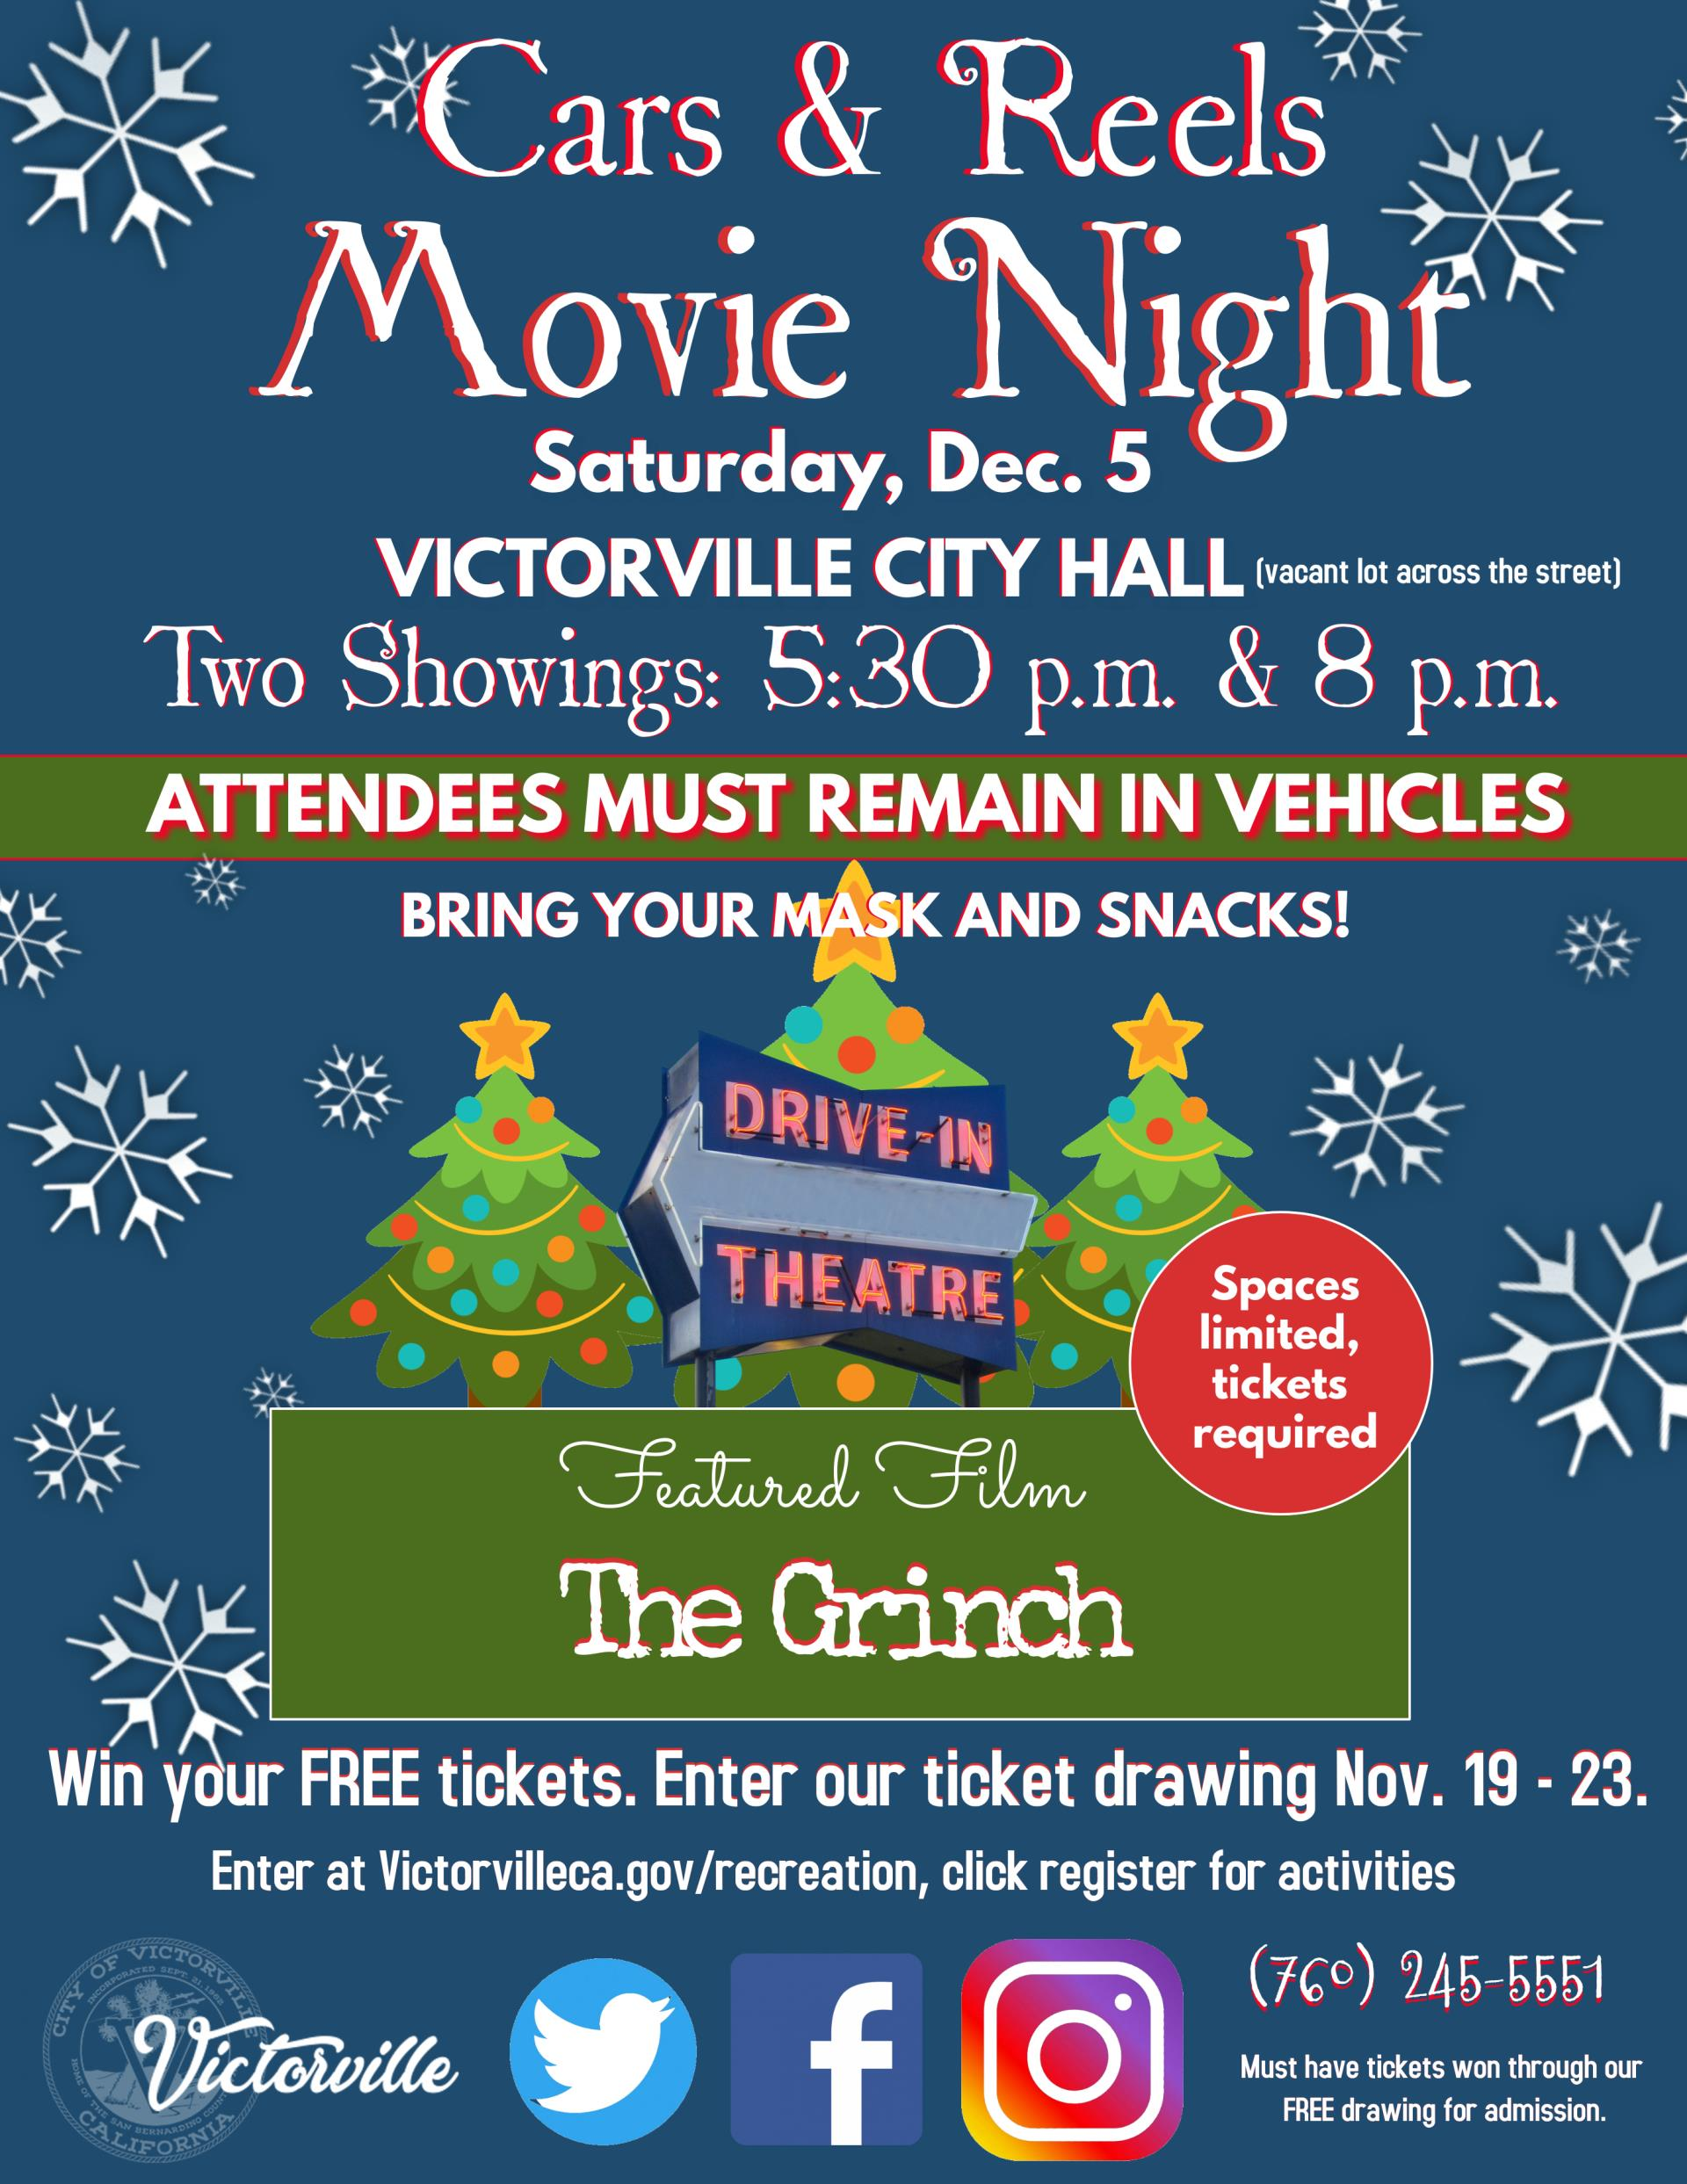 Cars and Reels Movie Night Flyer_November 2020